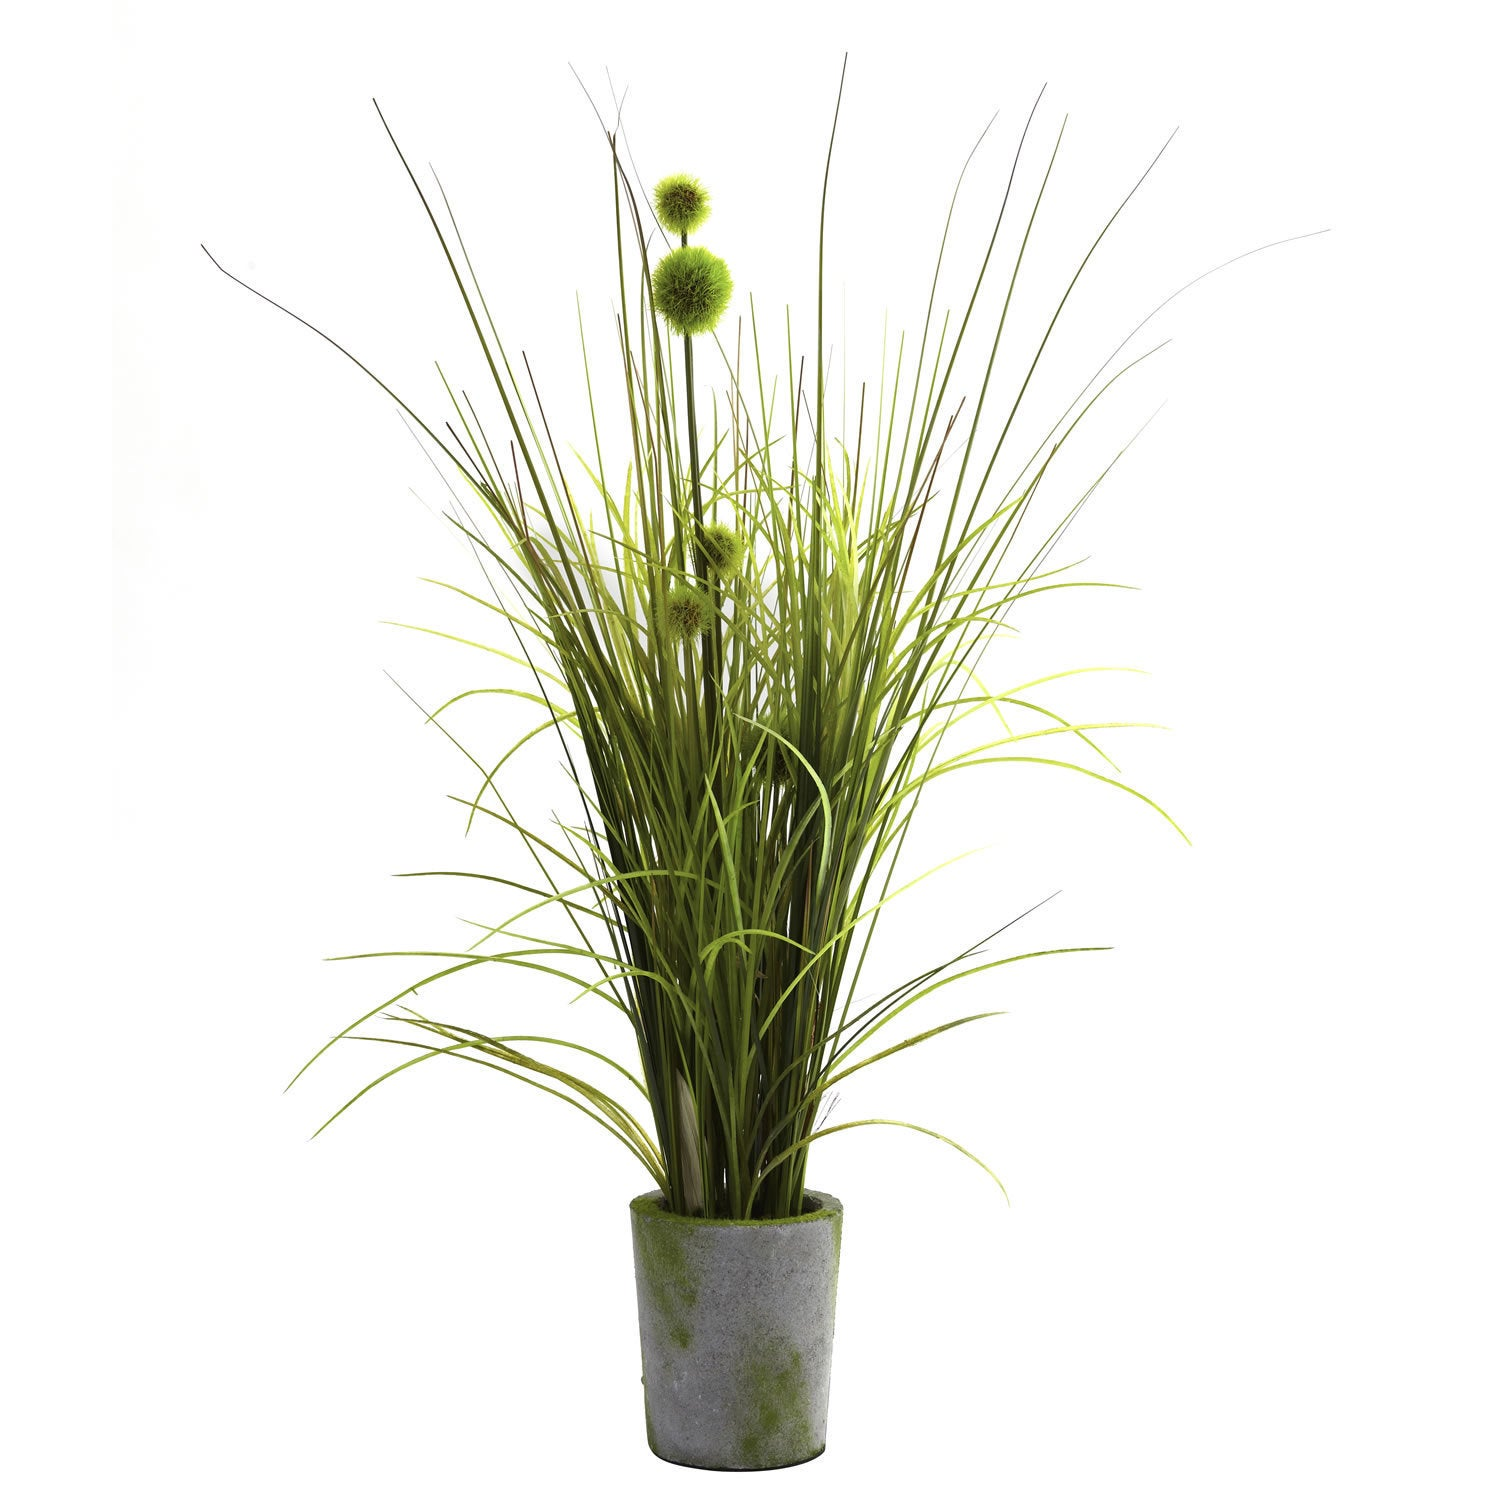 Grass and Dandelion in Cement Planter